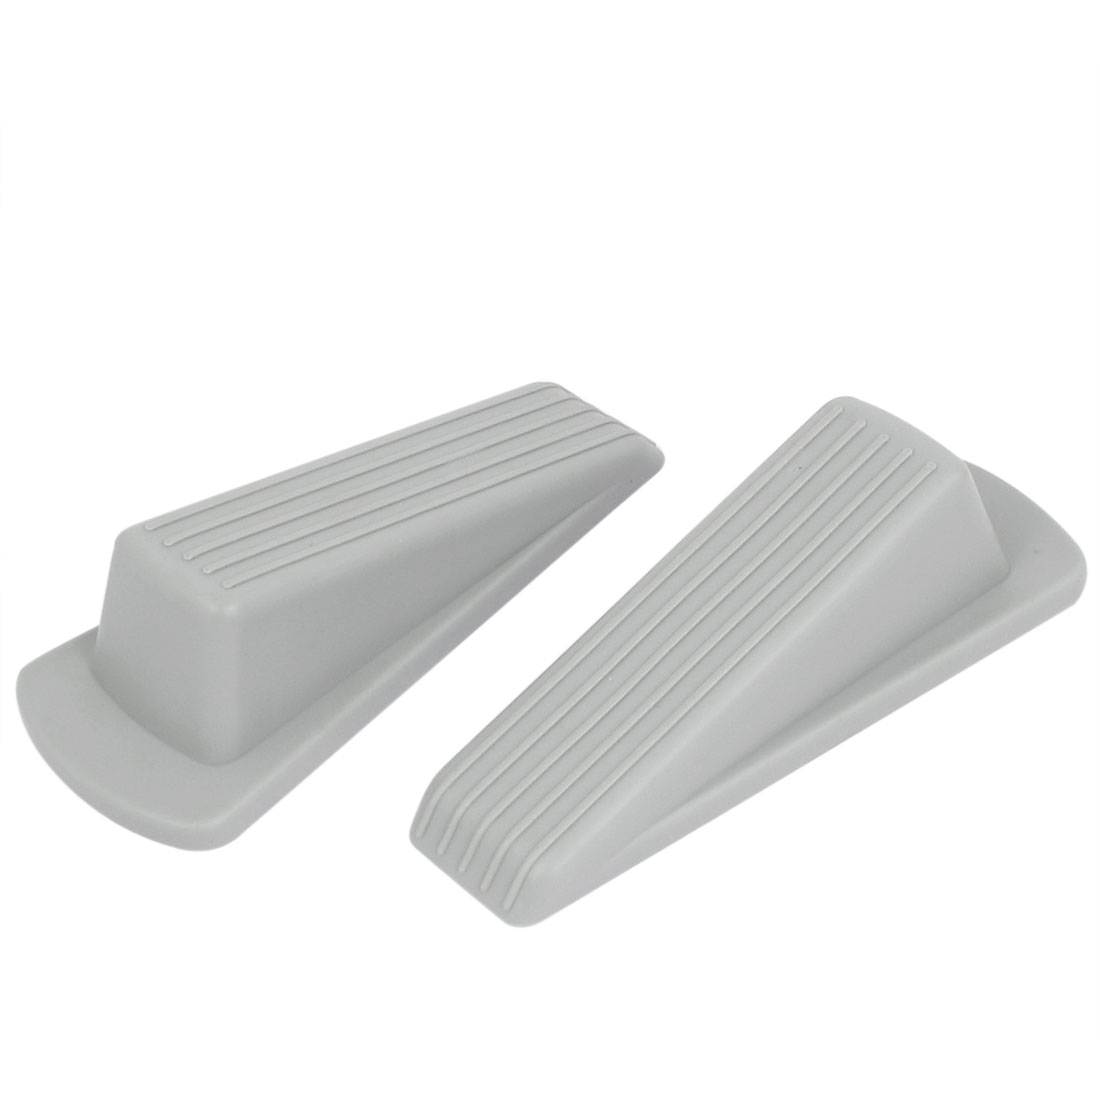 Home Office Floor Rubber Door Stop Stoppers Jam Block Wedges Gray 2pcs